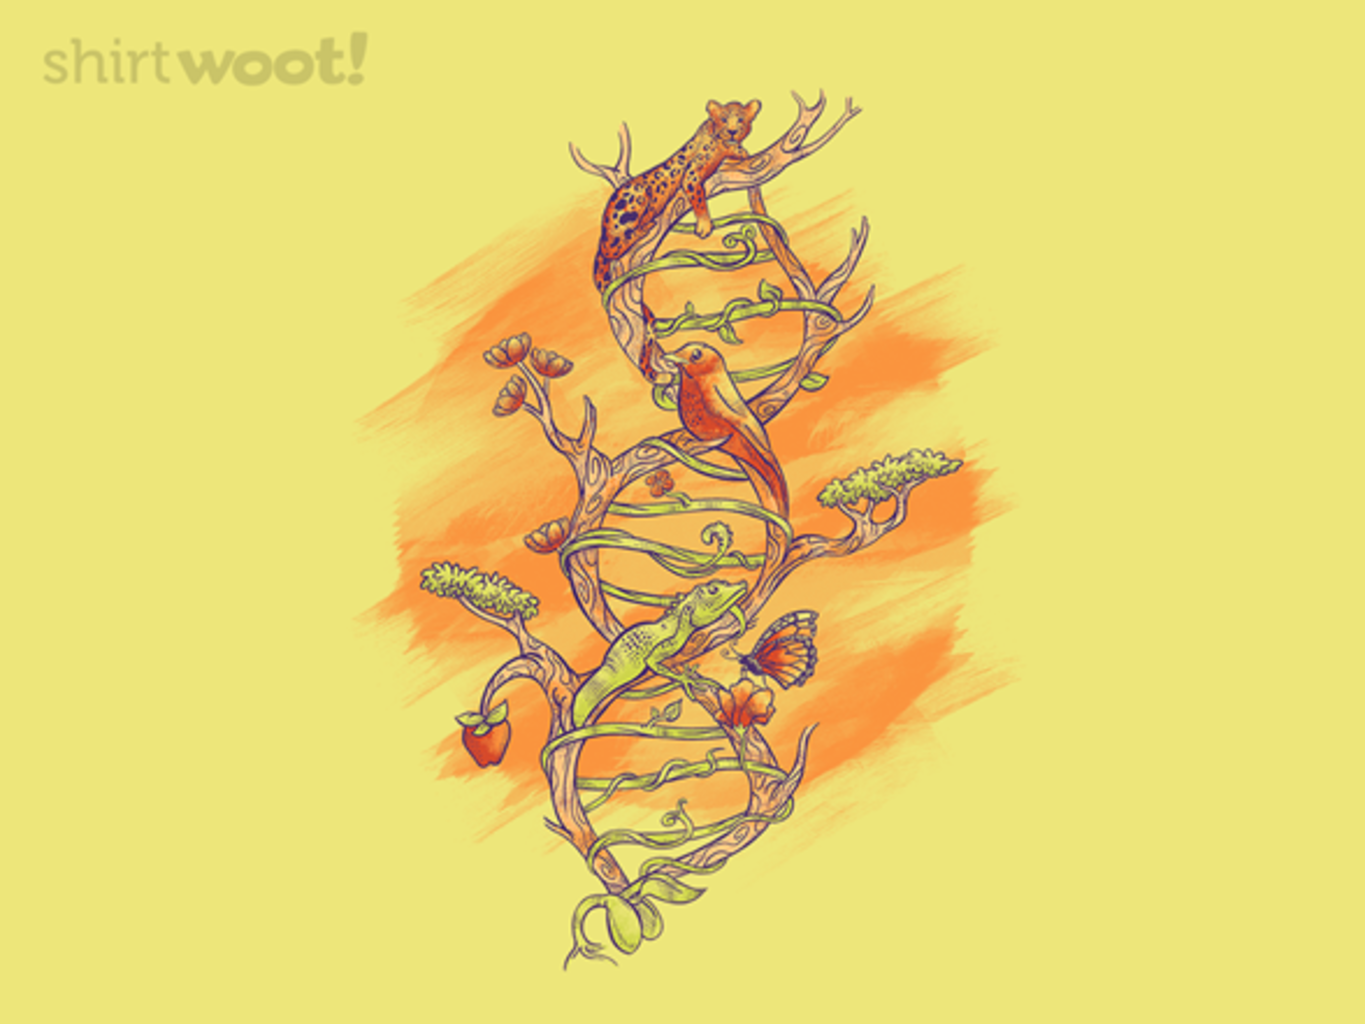 Woot!: Roots